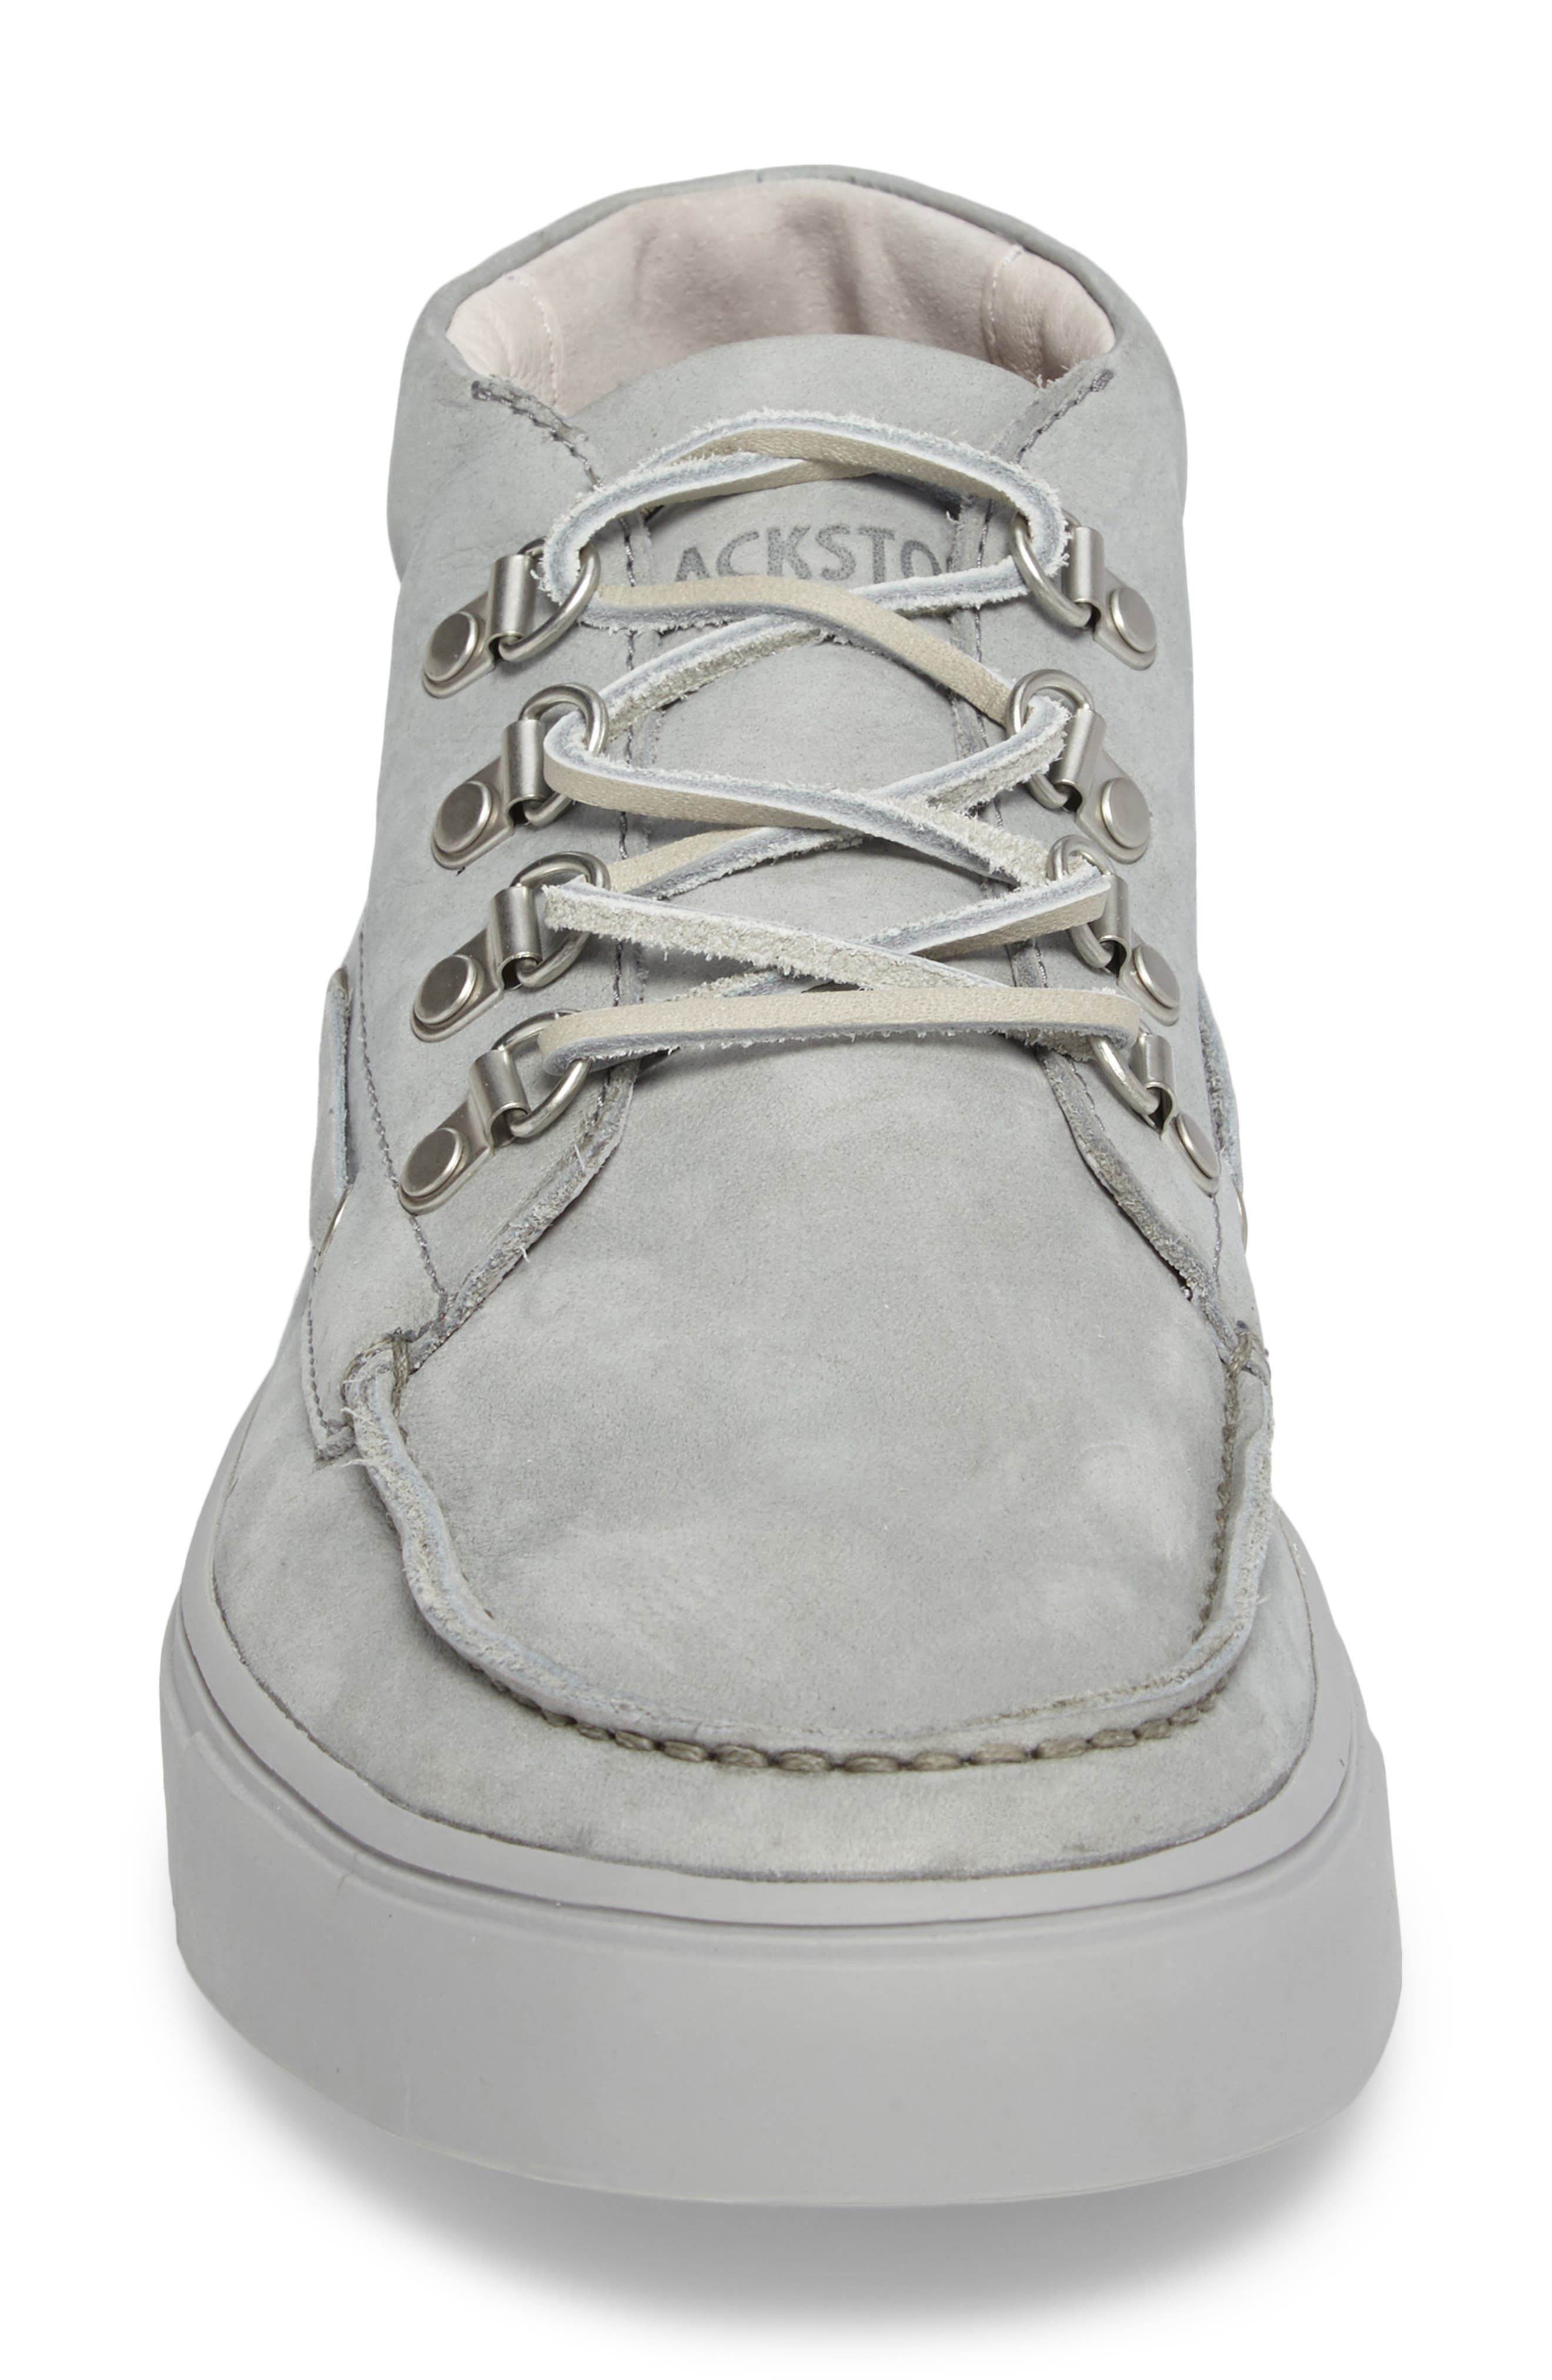 NM09 Mid Top Boat Sneaker,                             Alternate thumbnail 4, color,                             056